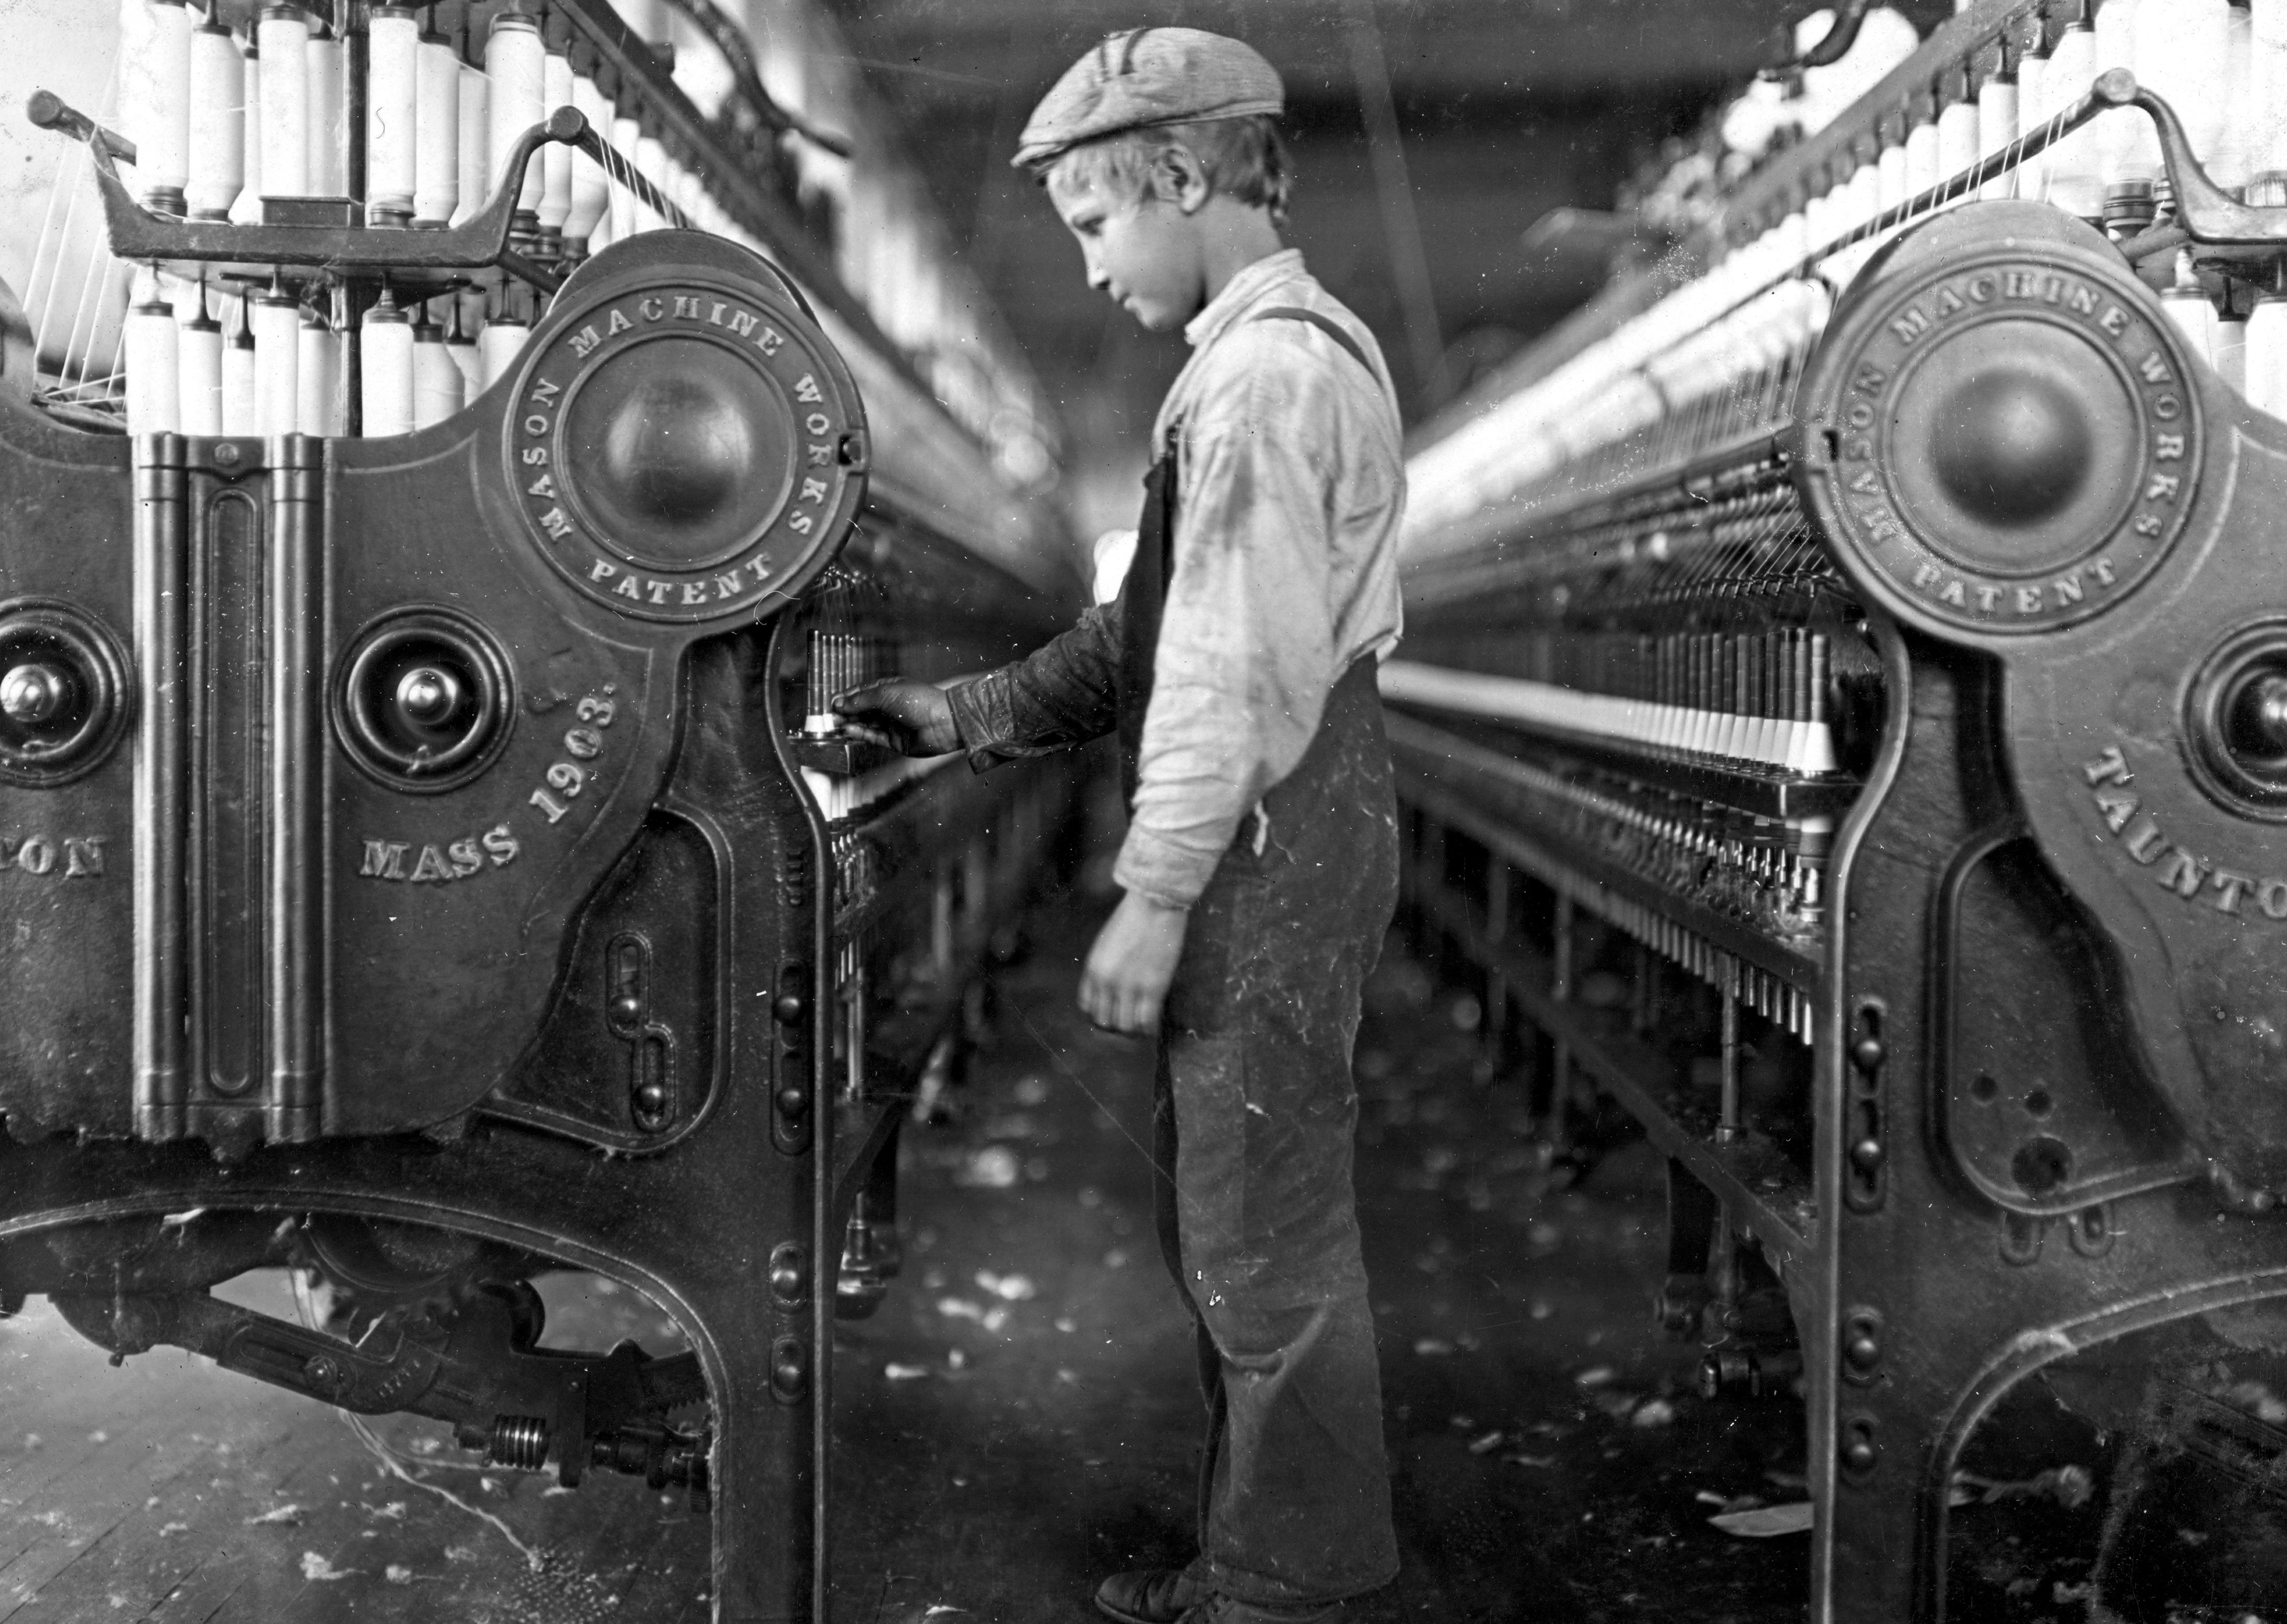 an overview of the labor and unions in america during the 1800s industrial revolution -labor unions -immigration during the late 1800s (1865-1900s), the blossom of an era was developed, the industrial revolution the industrial revolution provided the means and demands for more work and more workers.